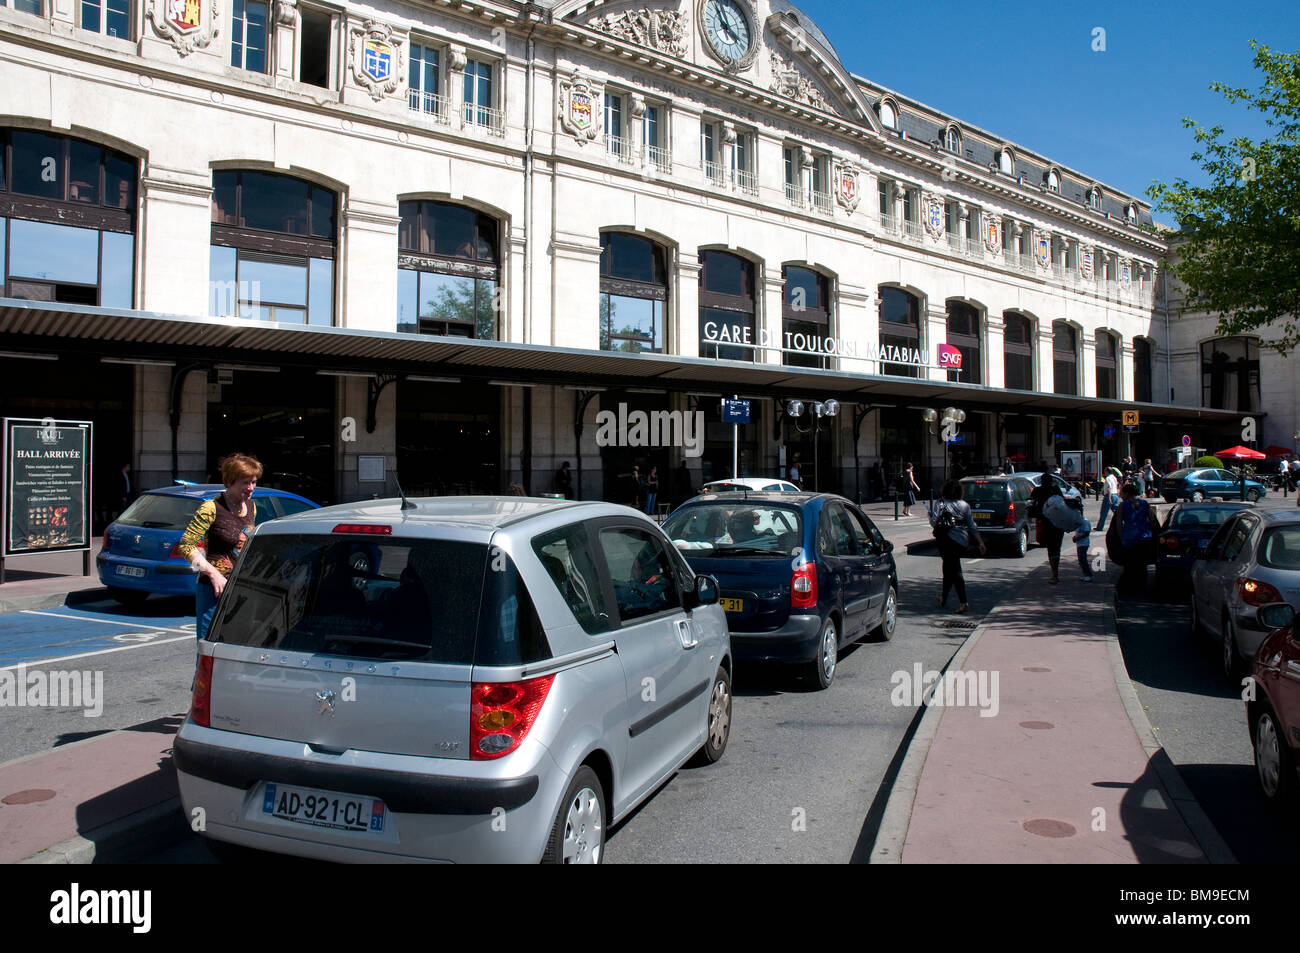 Gare Toulouse Matabiau - The facade of the Toulouse central train station. Passengers being picked up and dropped - Stock Image